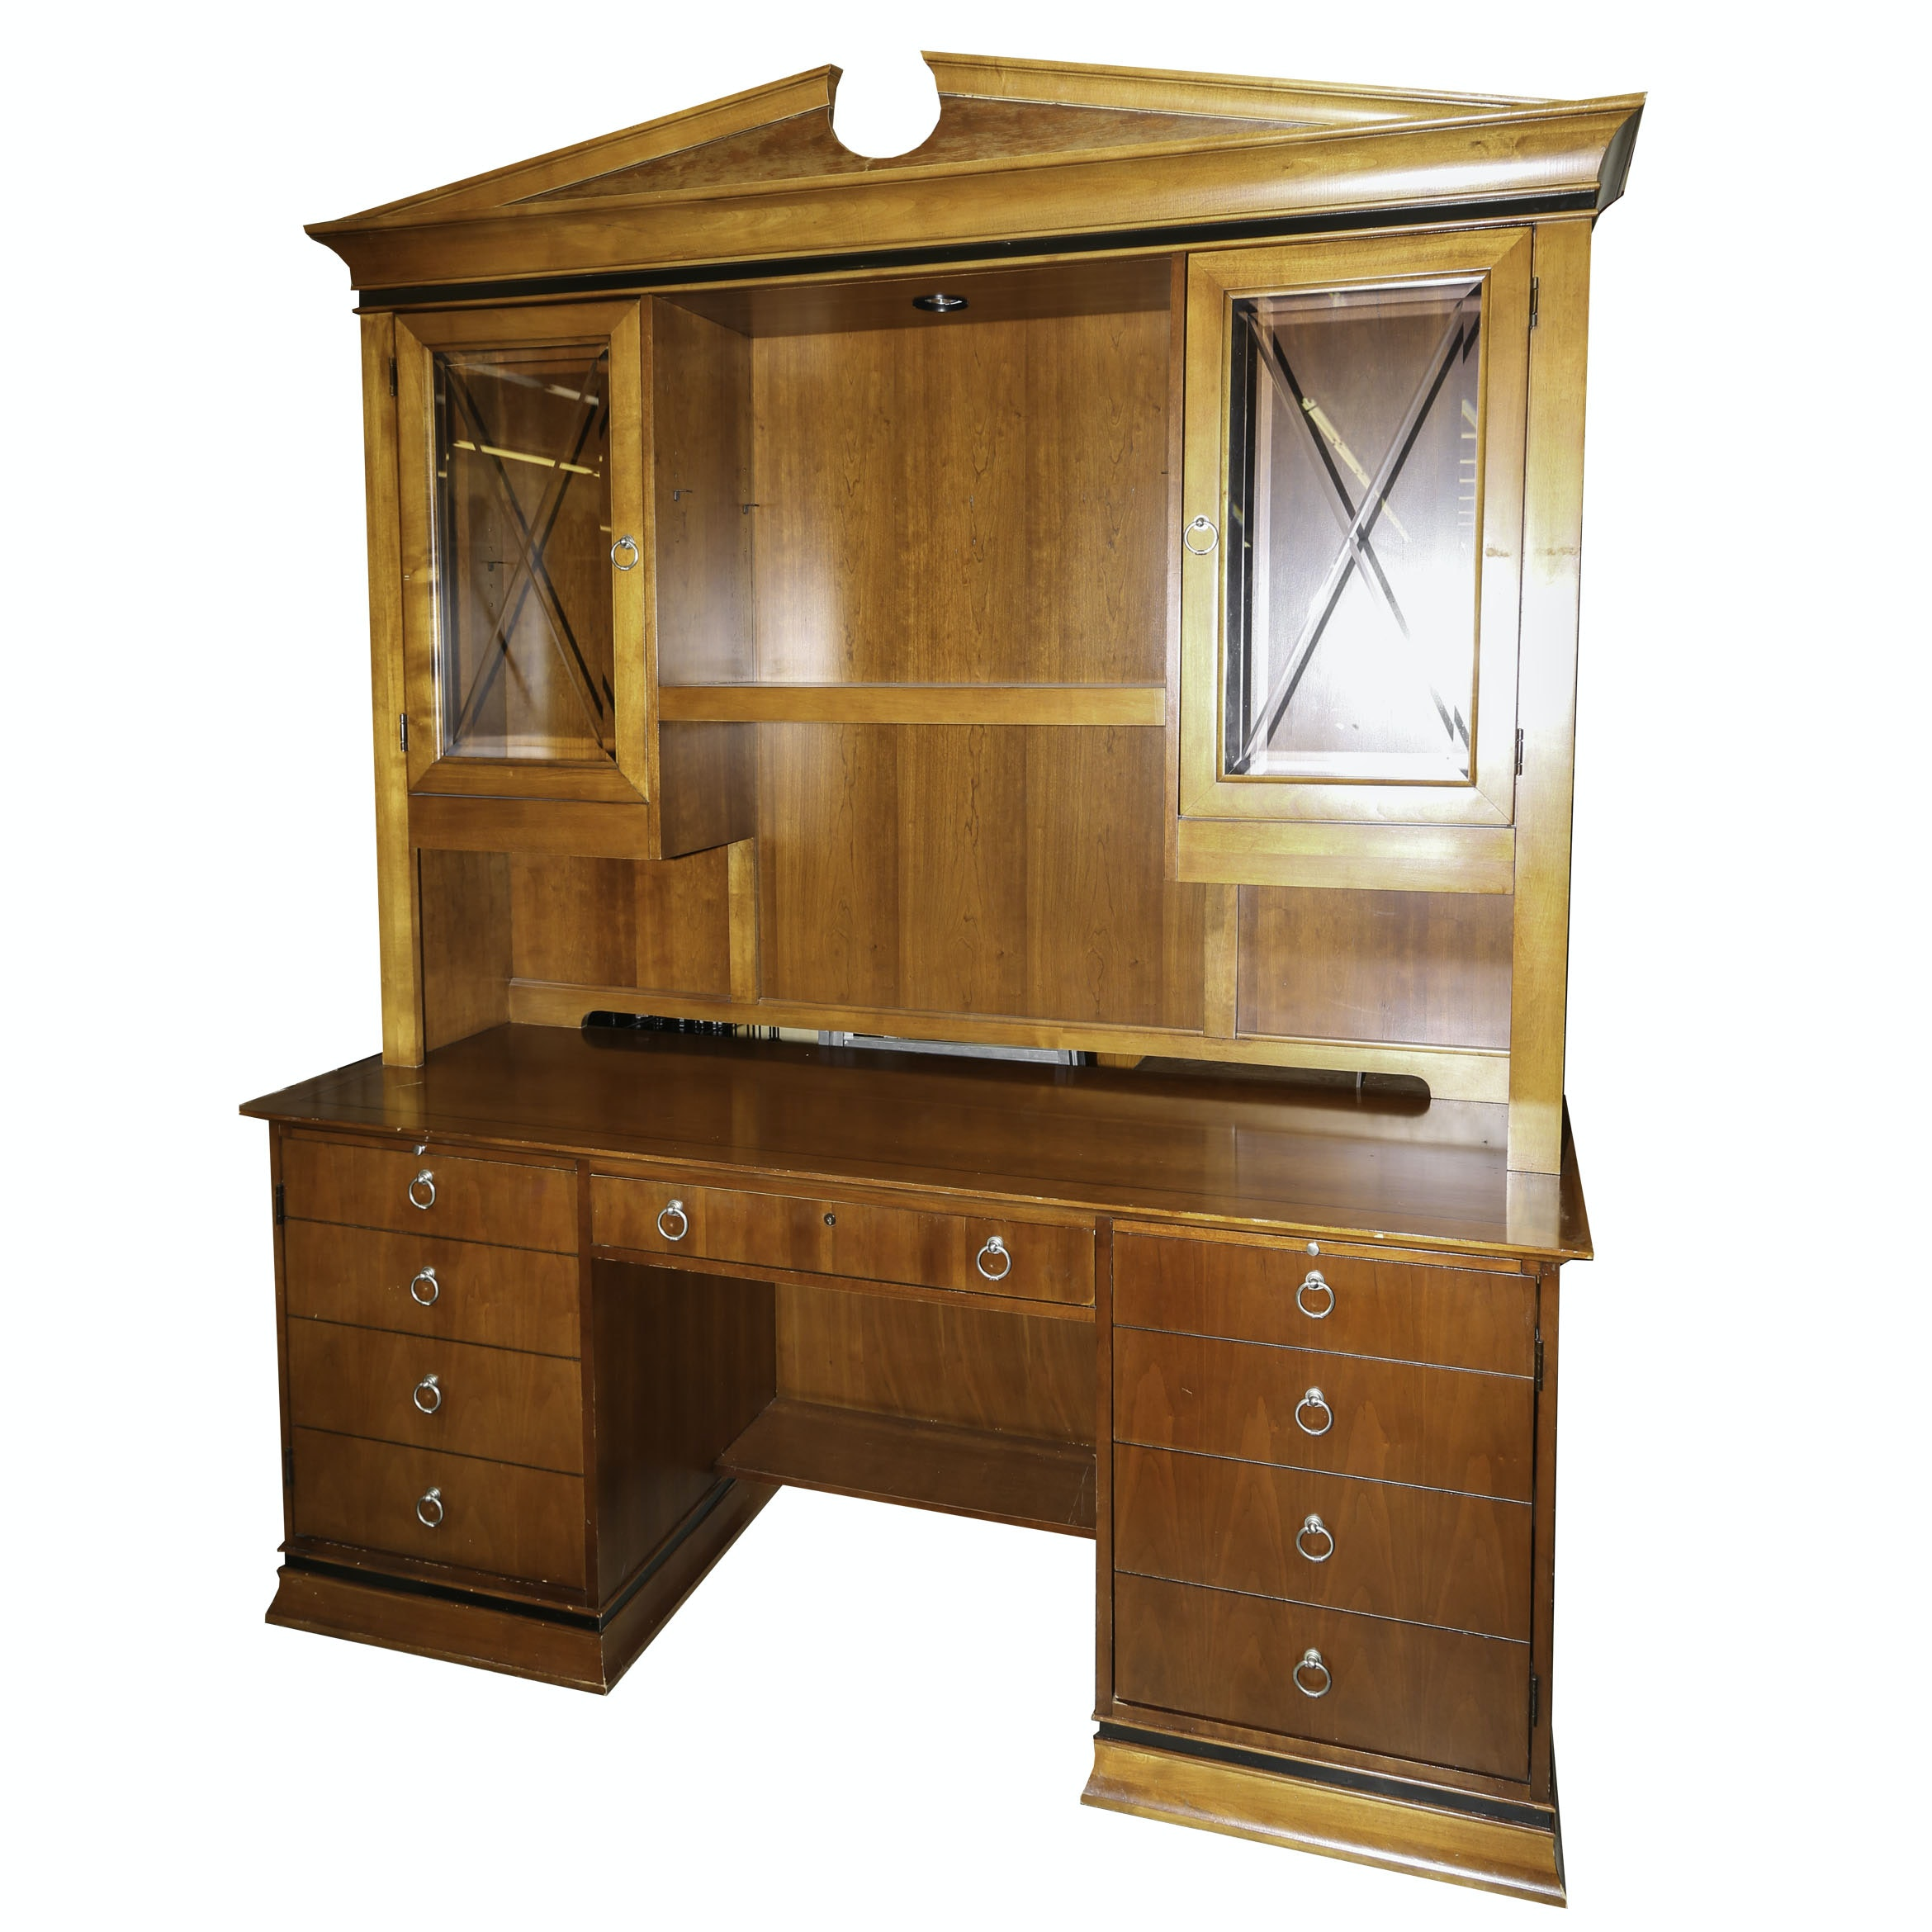 Federal Style Desk with Illuminated Hutch by Hooker Furniture, 20th Century